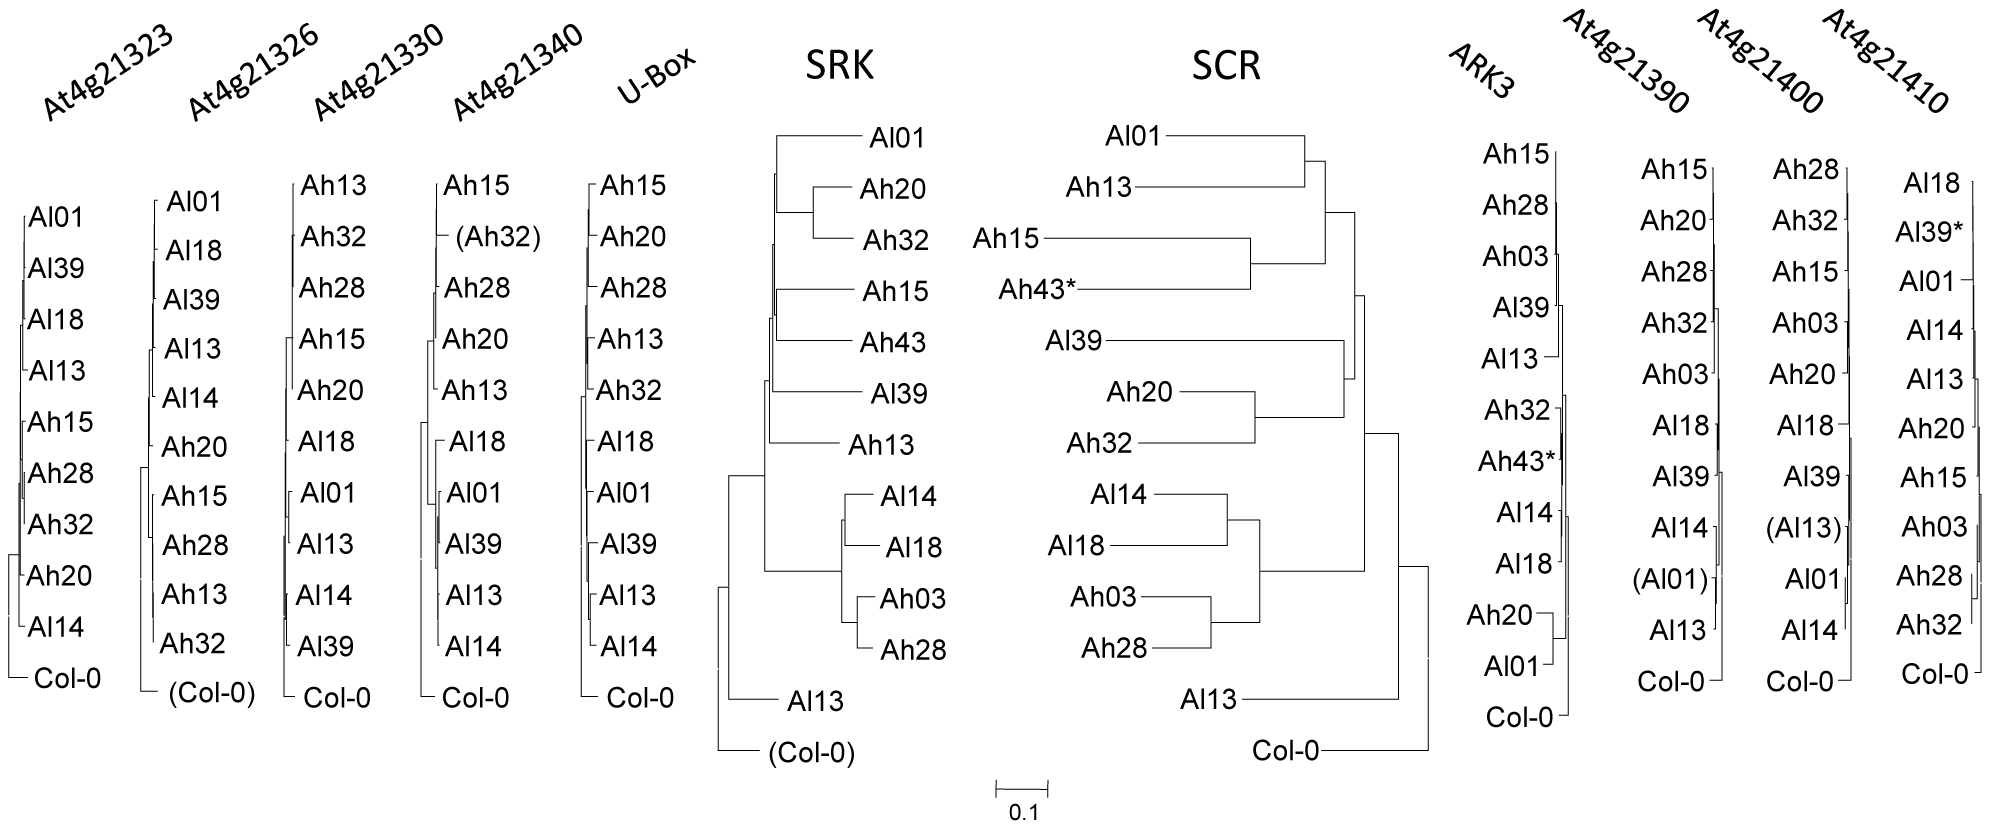 Gene phylogenies in and around the S-locus region.